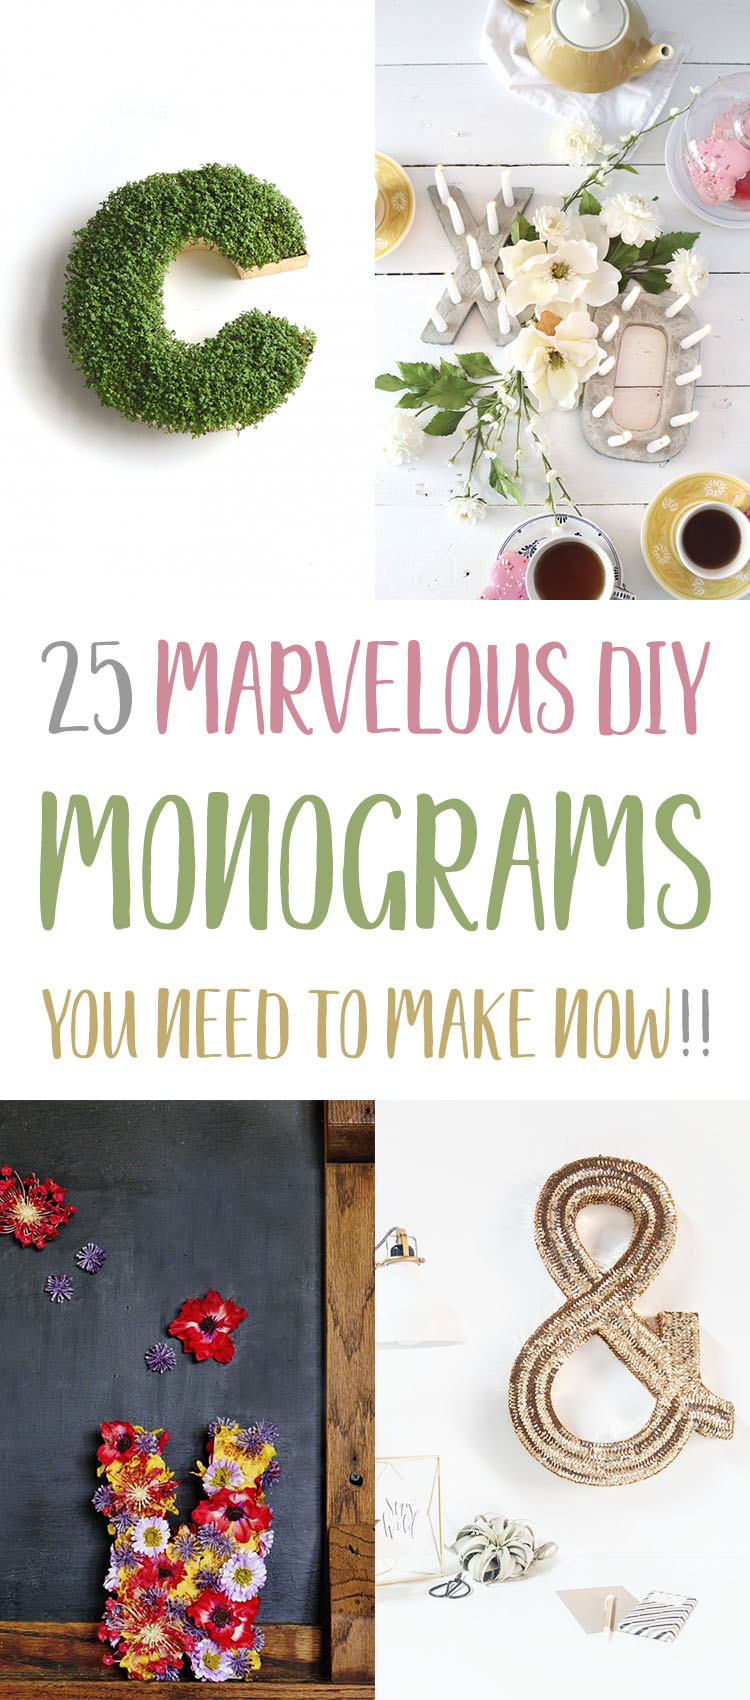 25 Marvelous DIY Monograms You Need To Make Now!!